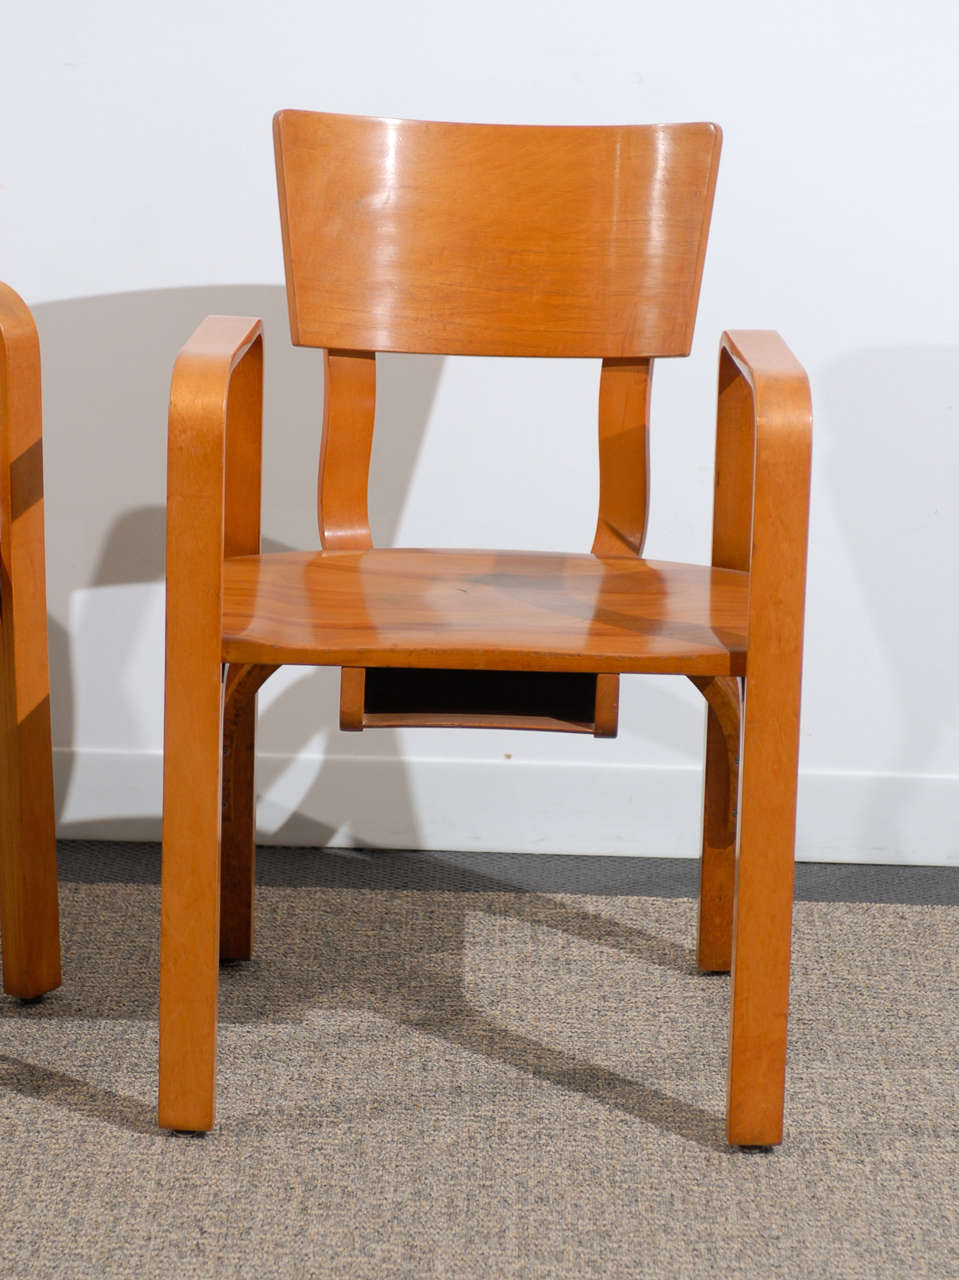 Vintage bent plywood thonet chair - An Unusual Pair Of Bent Plywood Arm Chairs By Thonet At